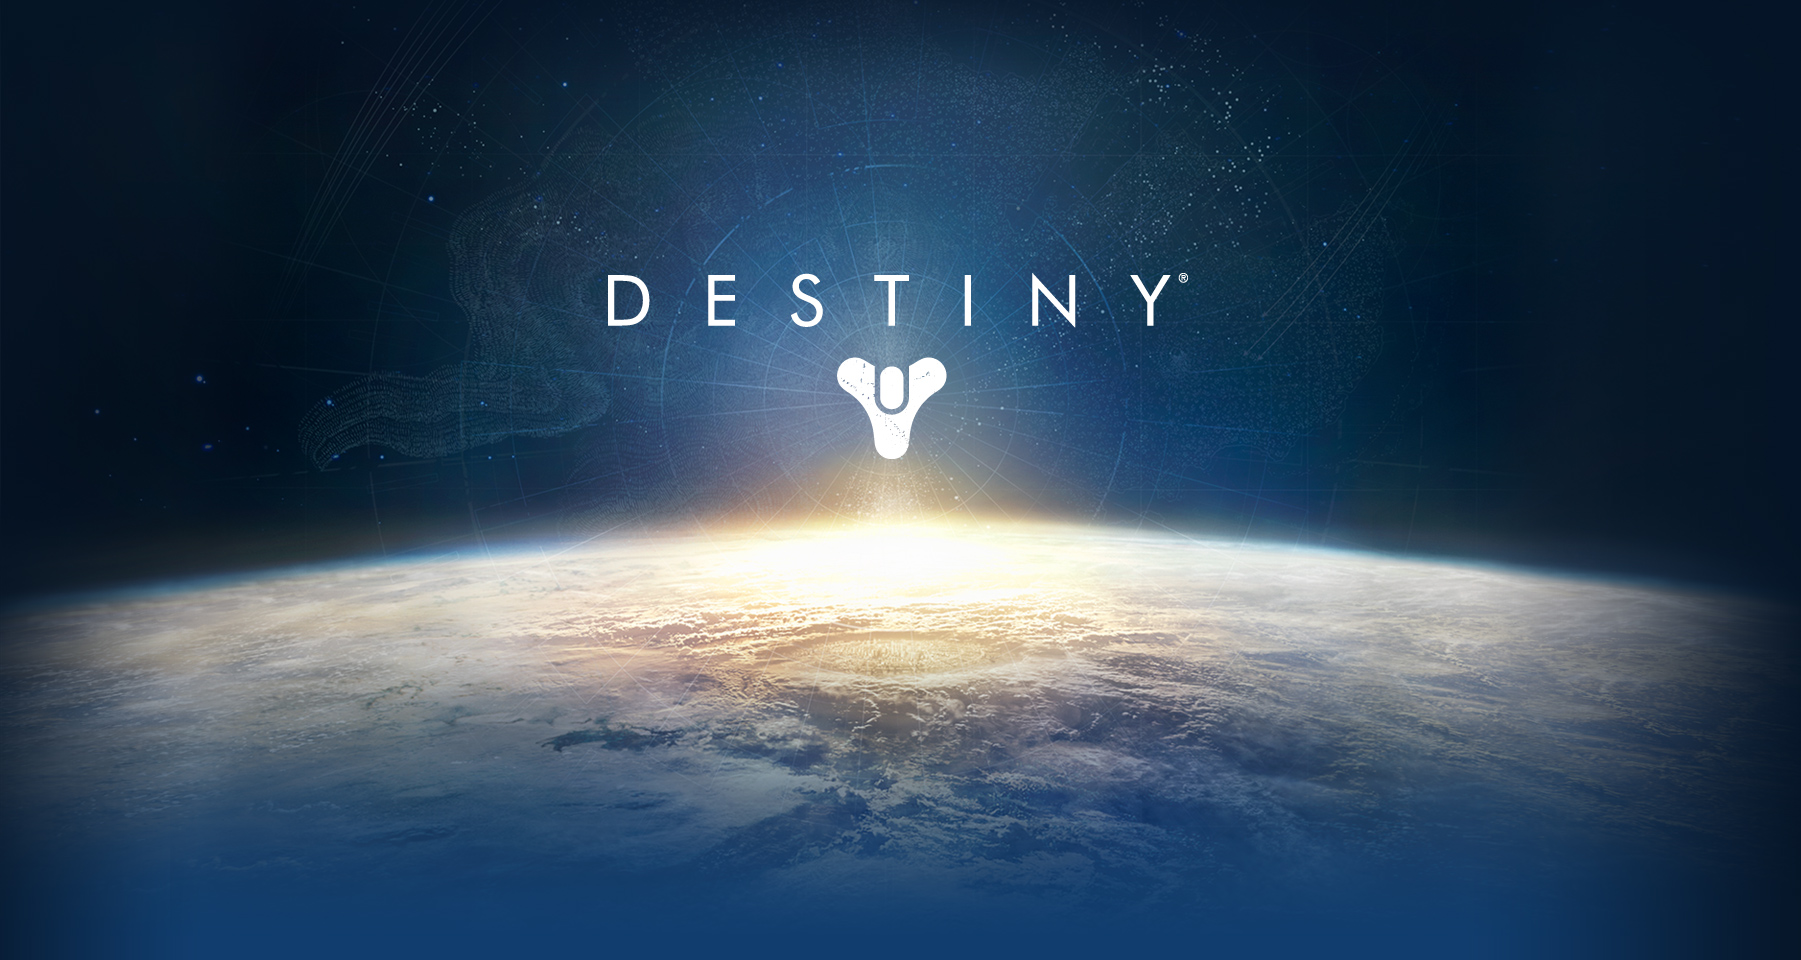 Destiny Wallpapers Xbox One - WallpaperSafari